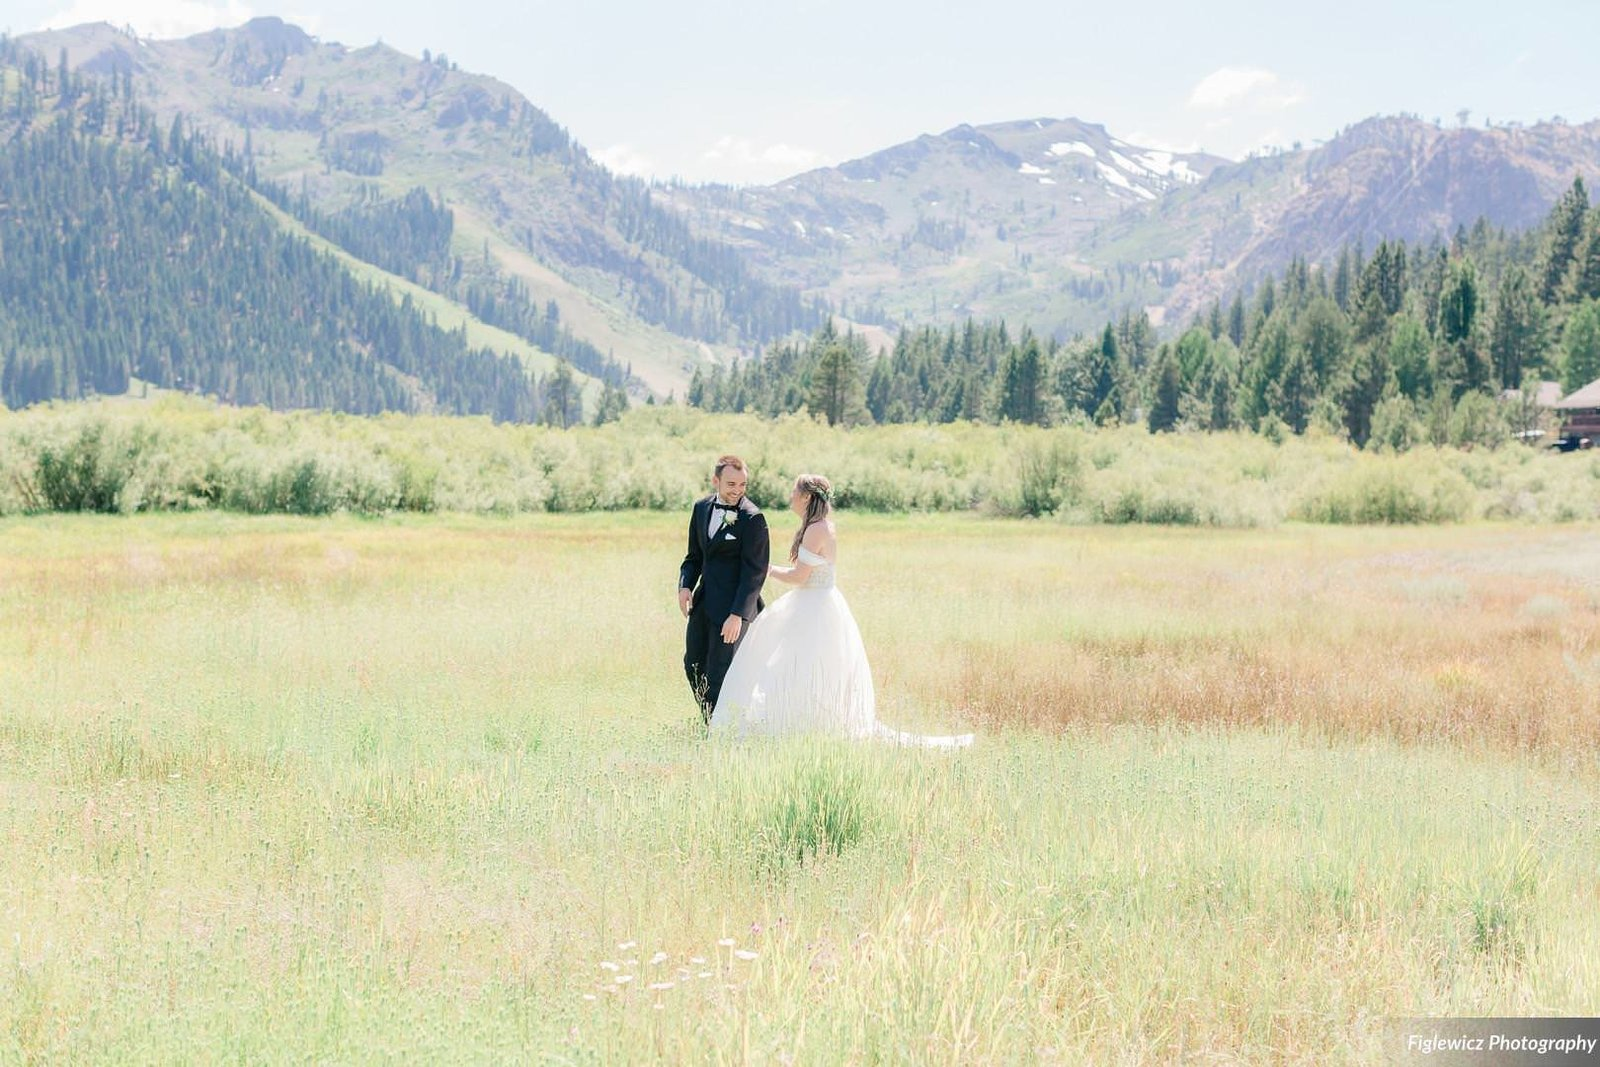 Garden_Tinsley_FiglewiczPhotography_LakeTahoeWeddingSquawValleyCreekTaylorBrendan00018_big